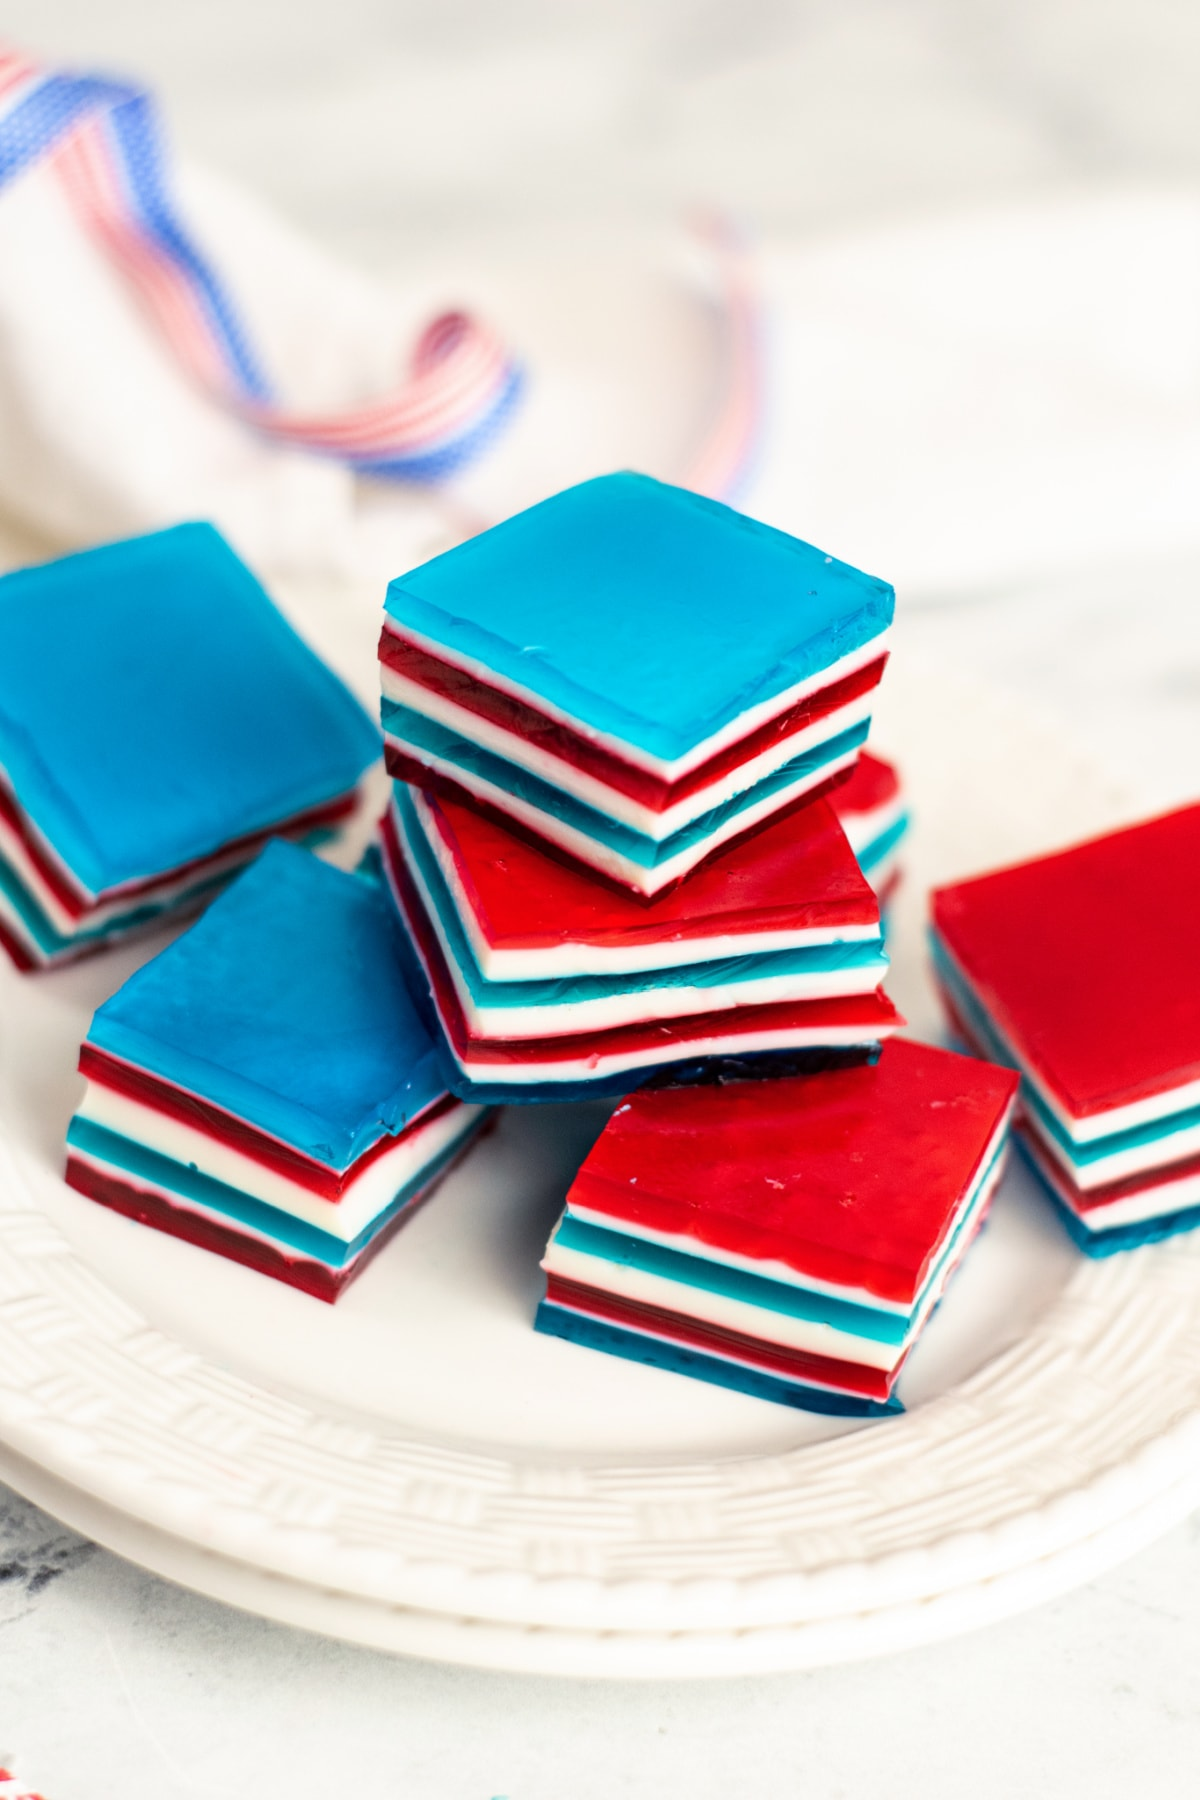 Red, white and blue jello on white plate